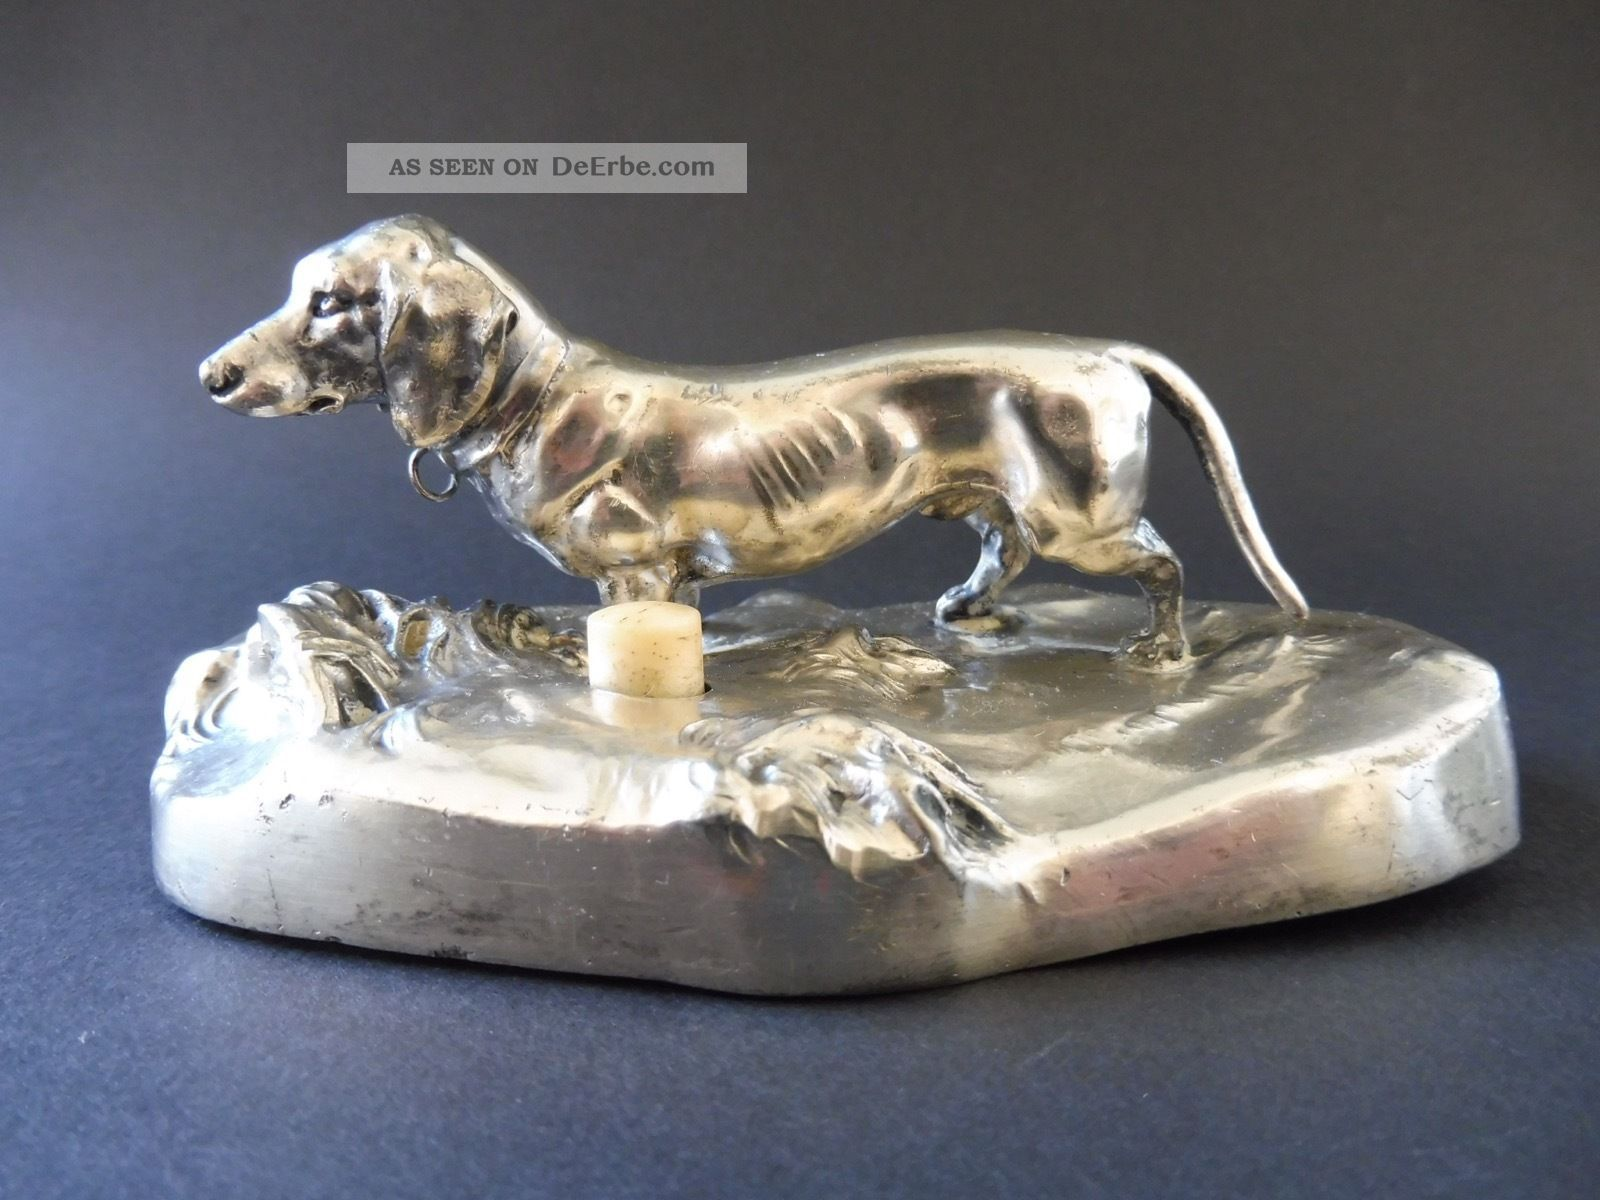 :: Jugendstil Dackel Klingel Tischglocke Dachshund Art Nouveau Table Bell Switch 1890-1919, Jugendstil Bild